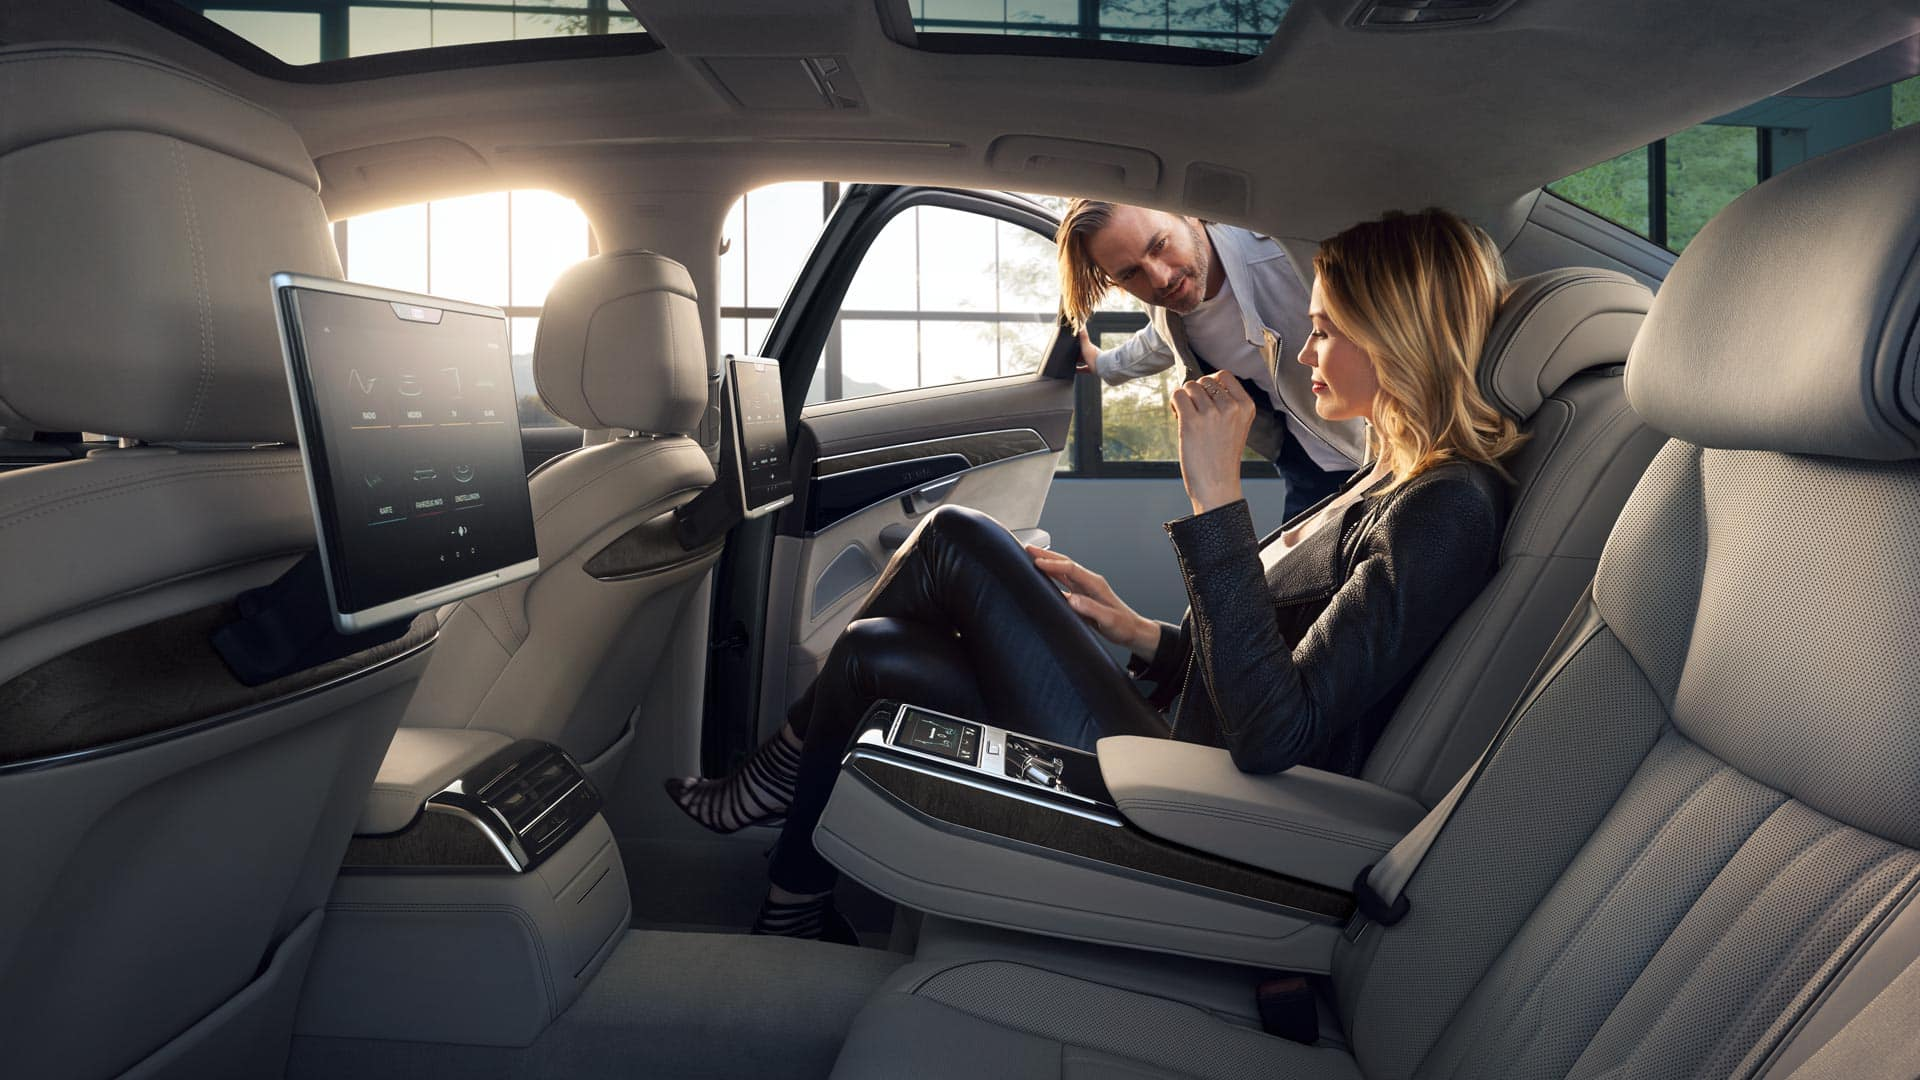 The new audi a8 audi cayman islands massage on heated and ventilated resting chairs a double folding table even your own climate zone all this awaits you in the rear of the new a8 sciox Image collections